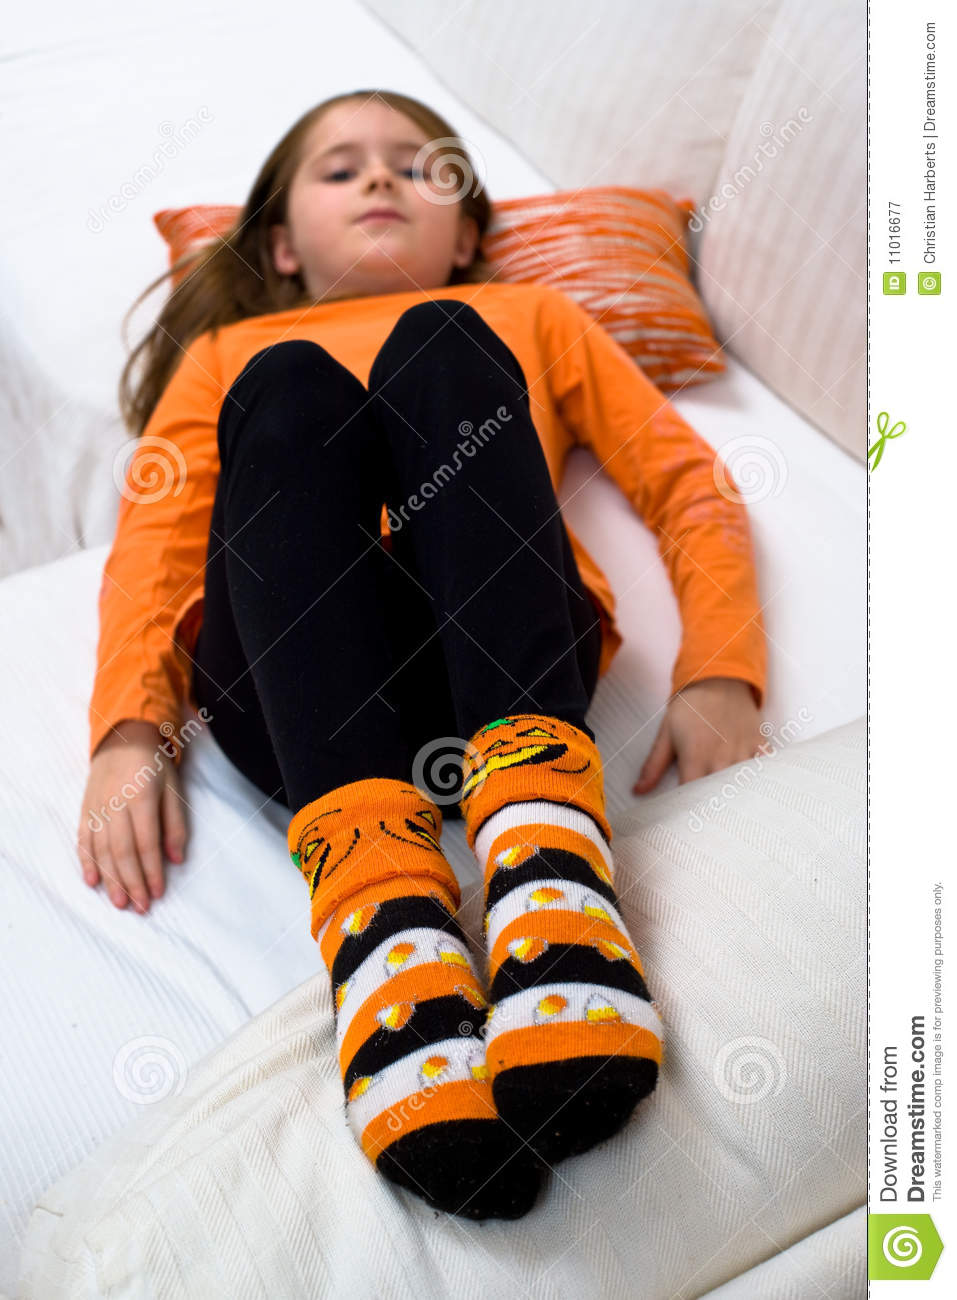 Hanes Girls' Socks. Hanes is the go-to brand for girls' socks and girls' tights. Cotton-rich, comfy and available in a variety of styles, including low cut, ankle, and crew, our girls' socks .